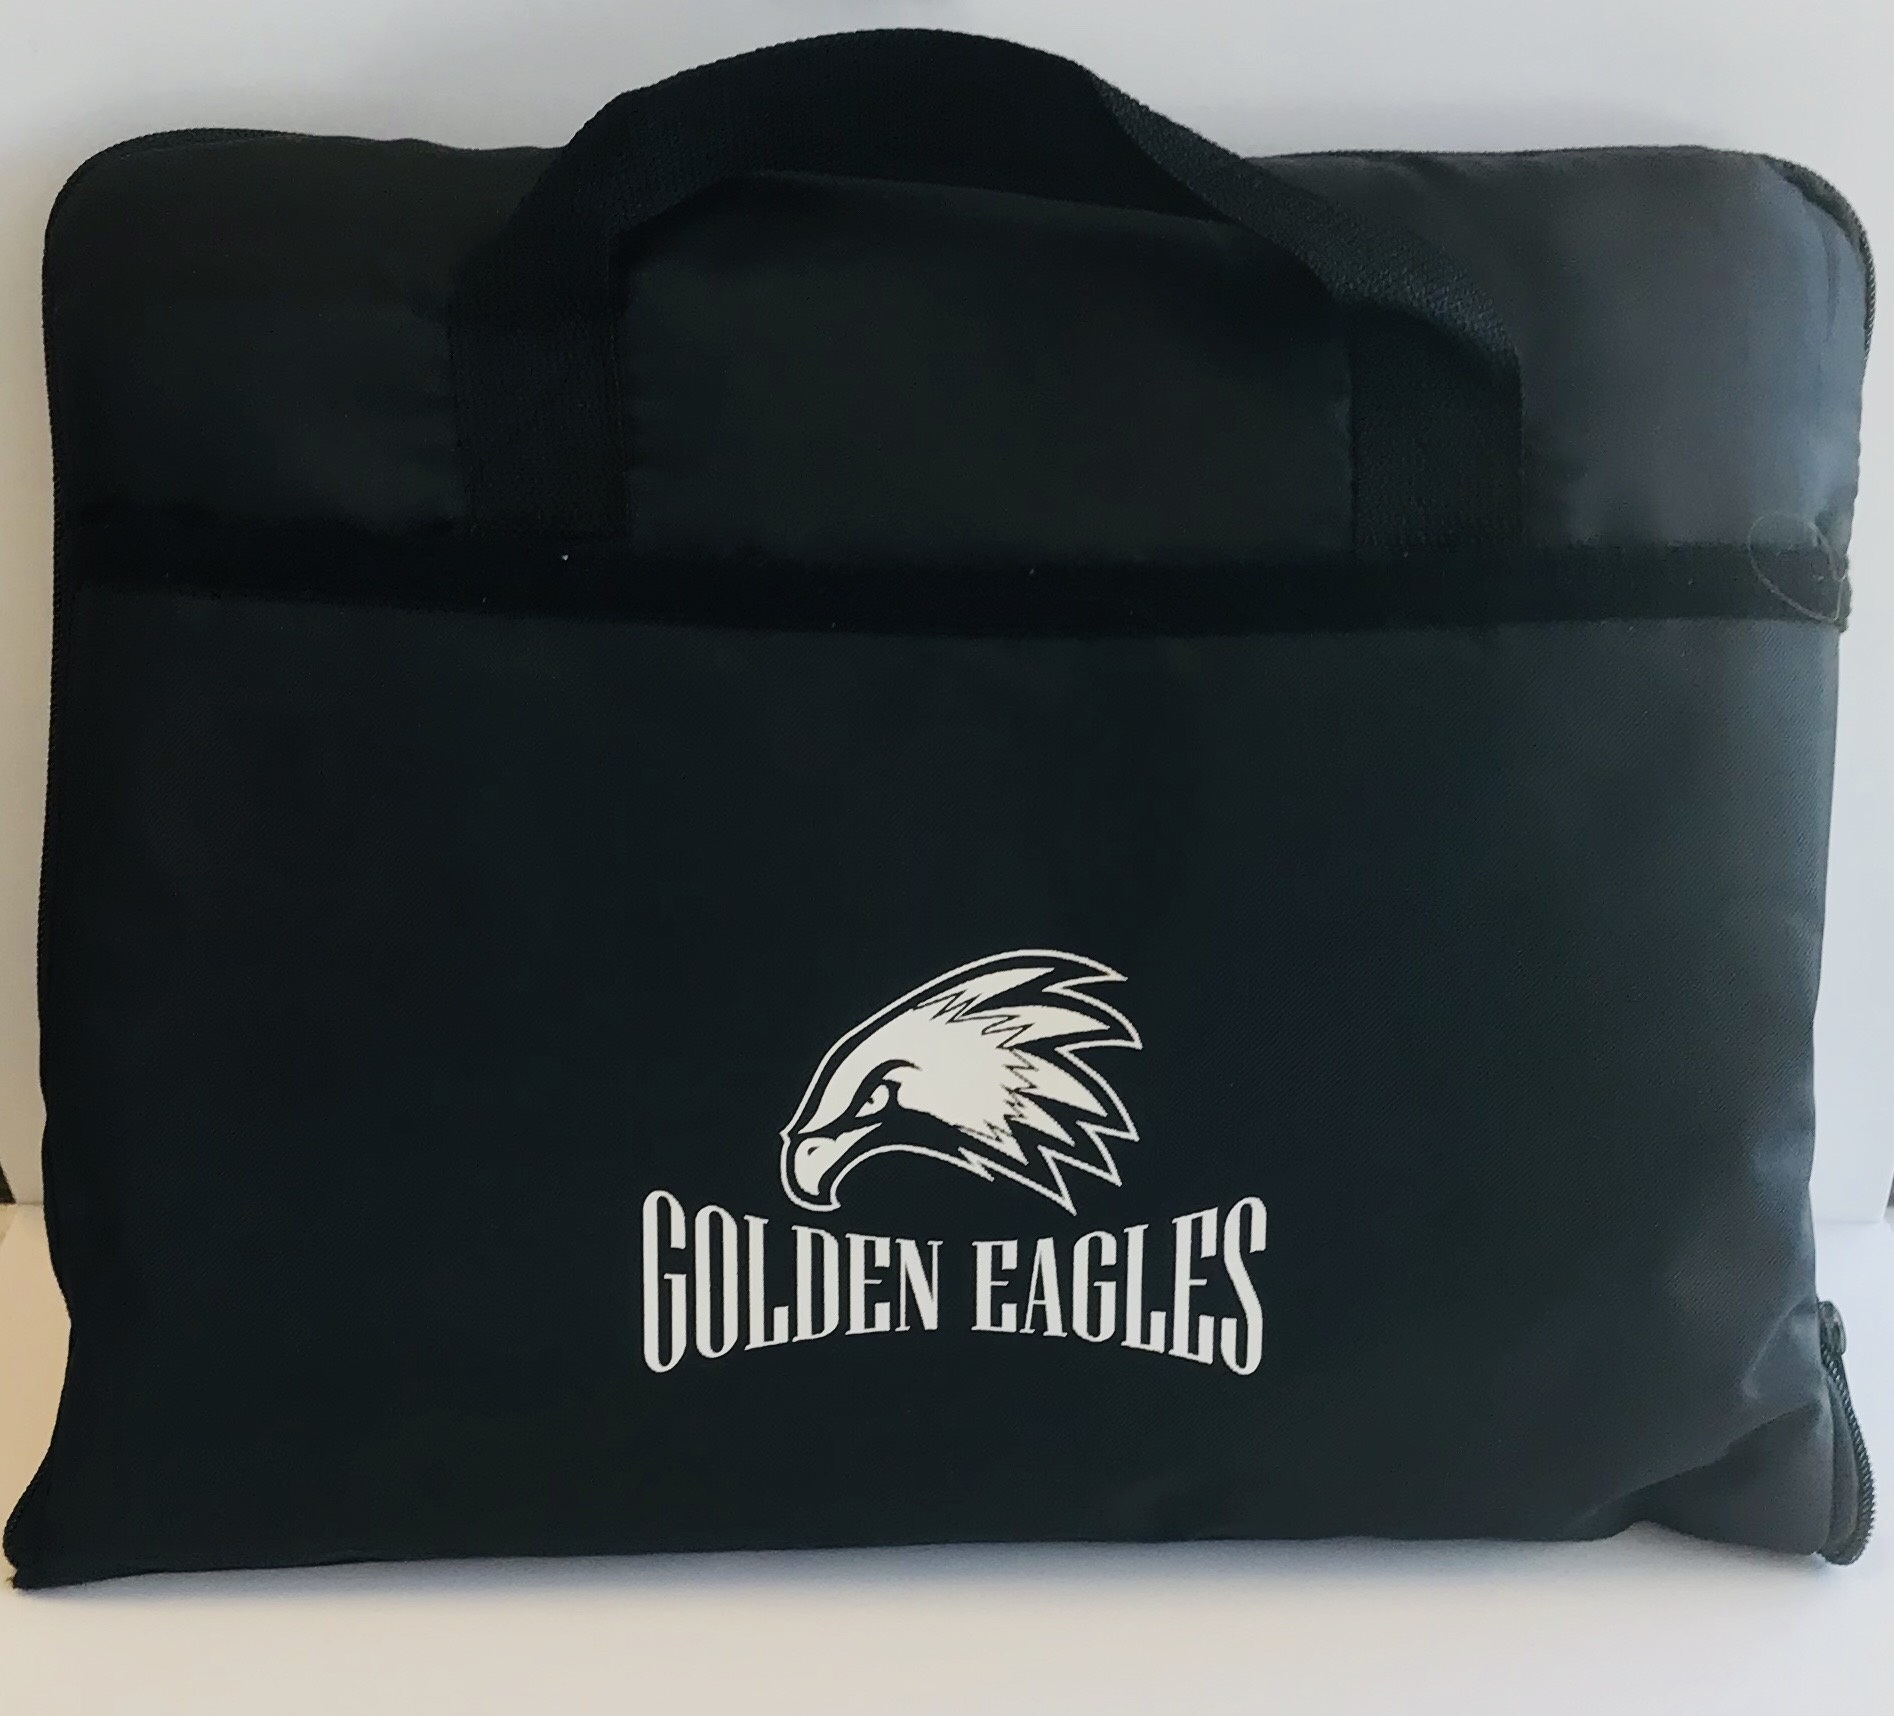 Golden Eagles Seat Cushion & Blanket